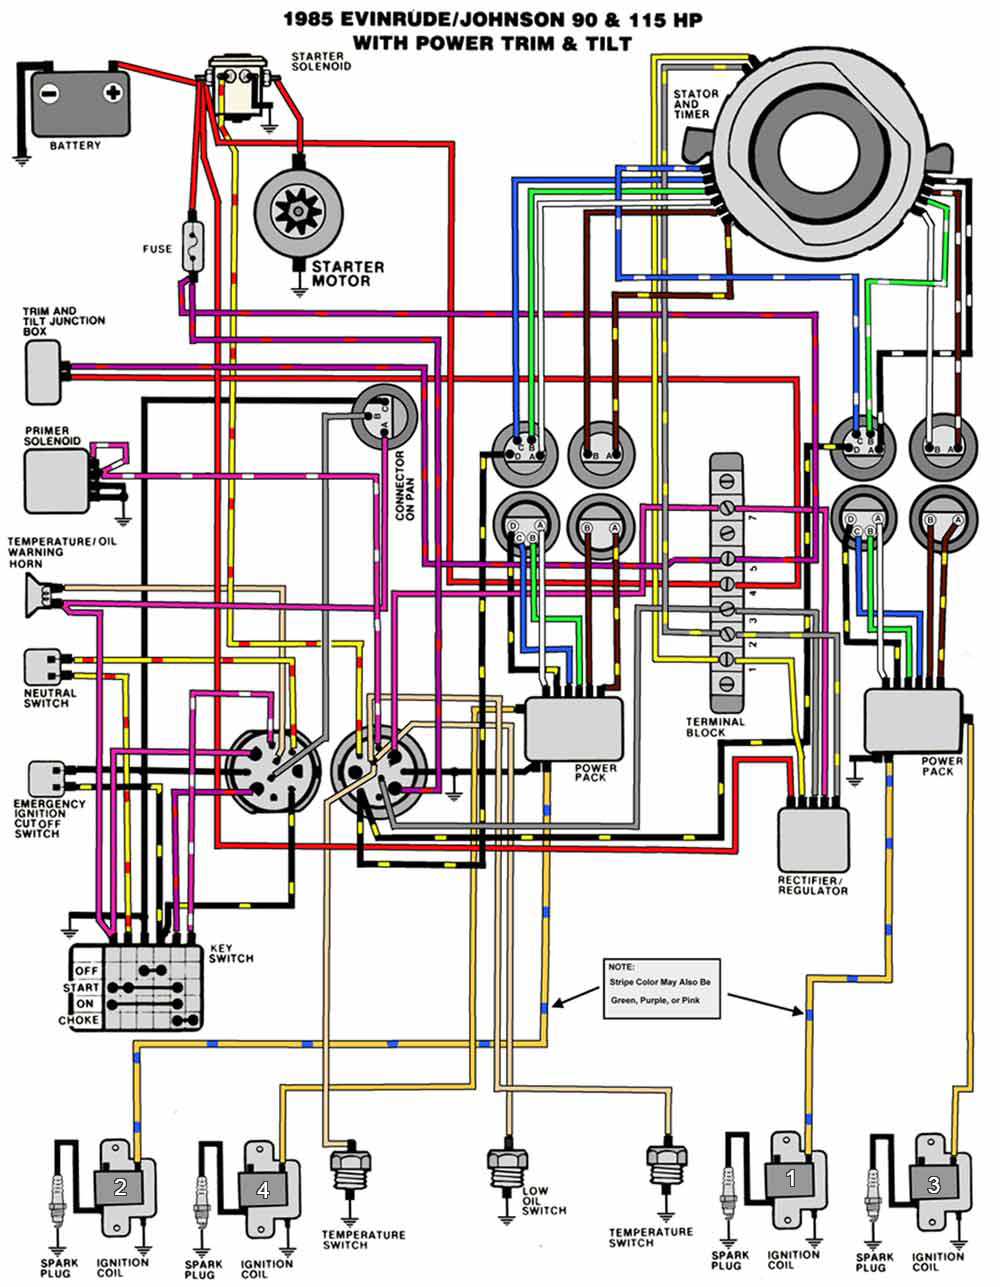 1985_90_115TnT wiring diagram for a 85 hp evinrude outboard wiring wiring  at bakdesigns.co